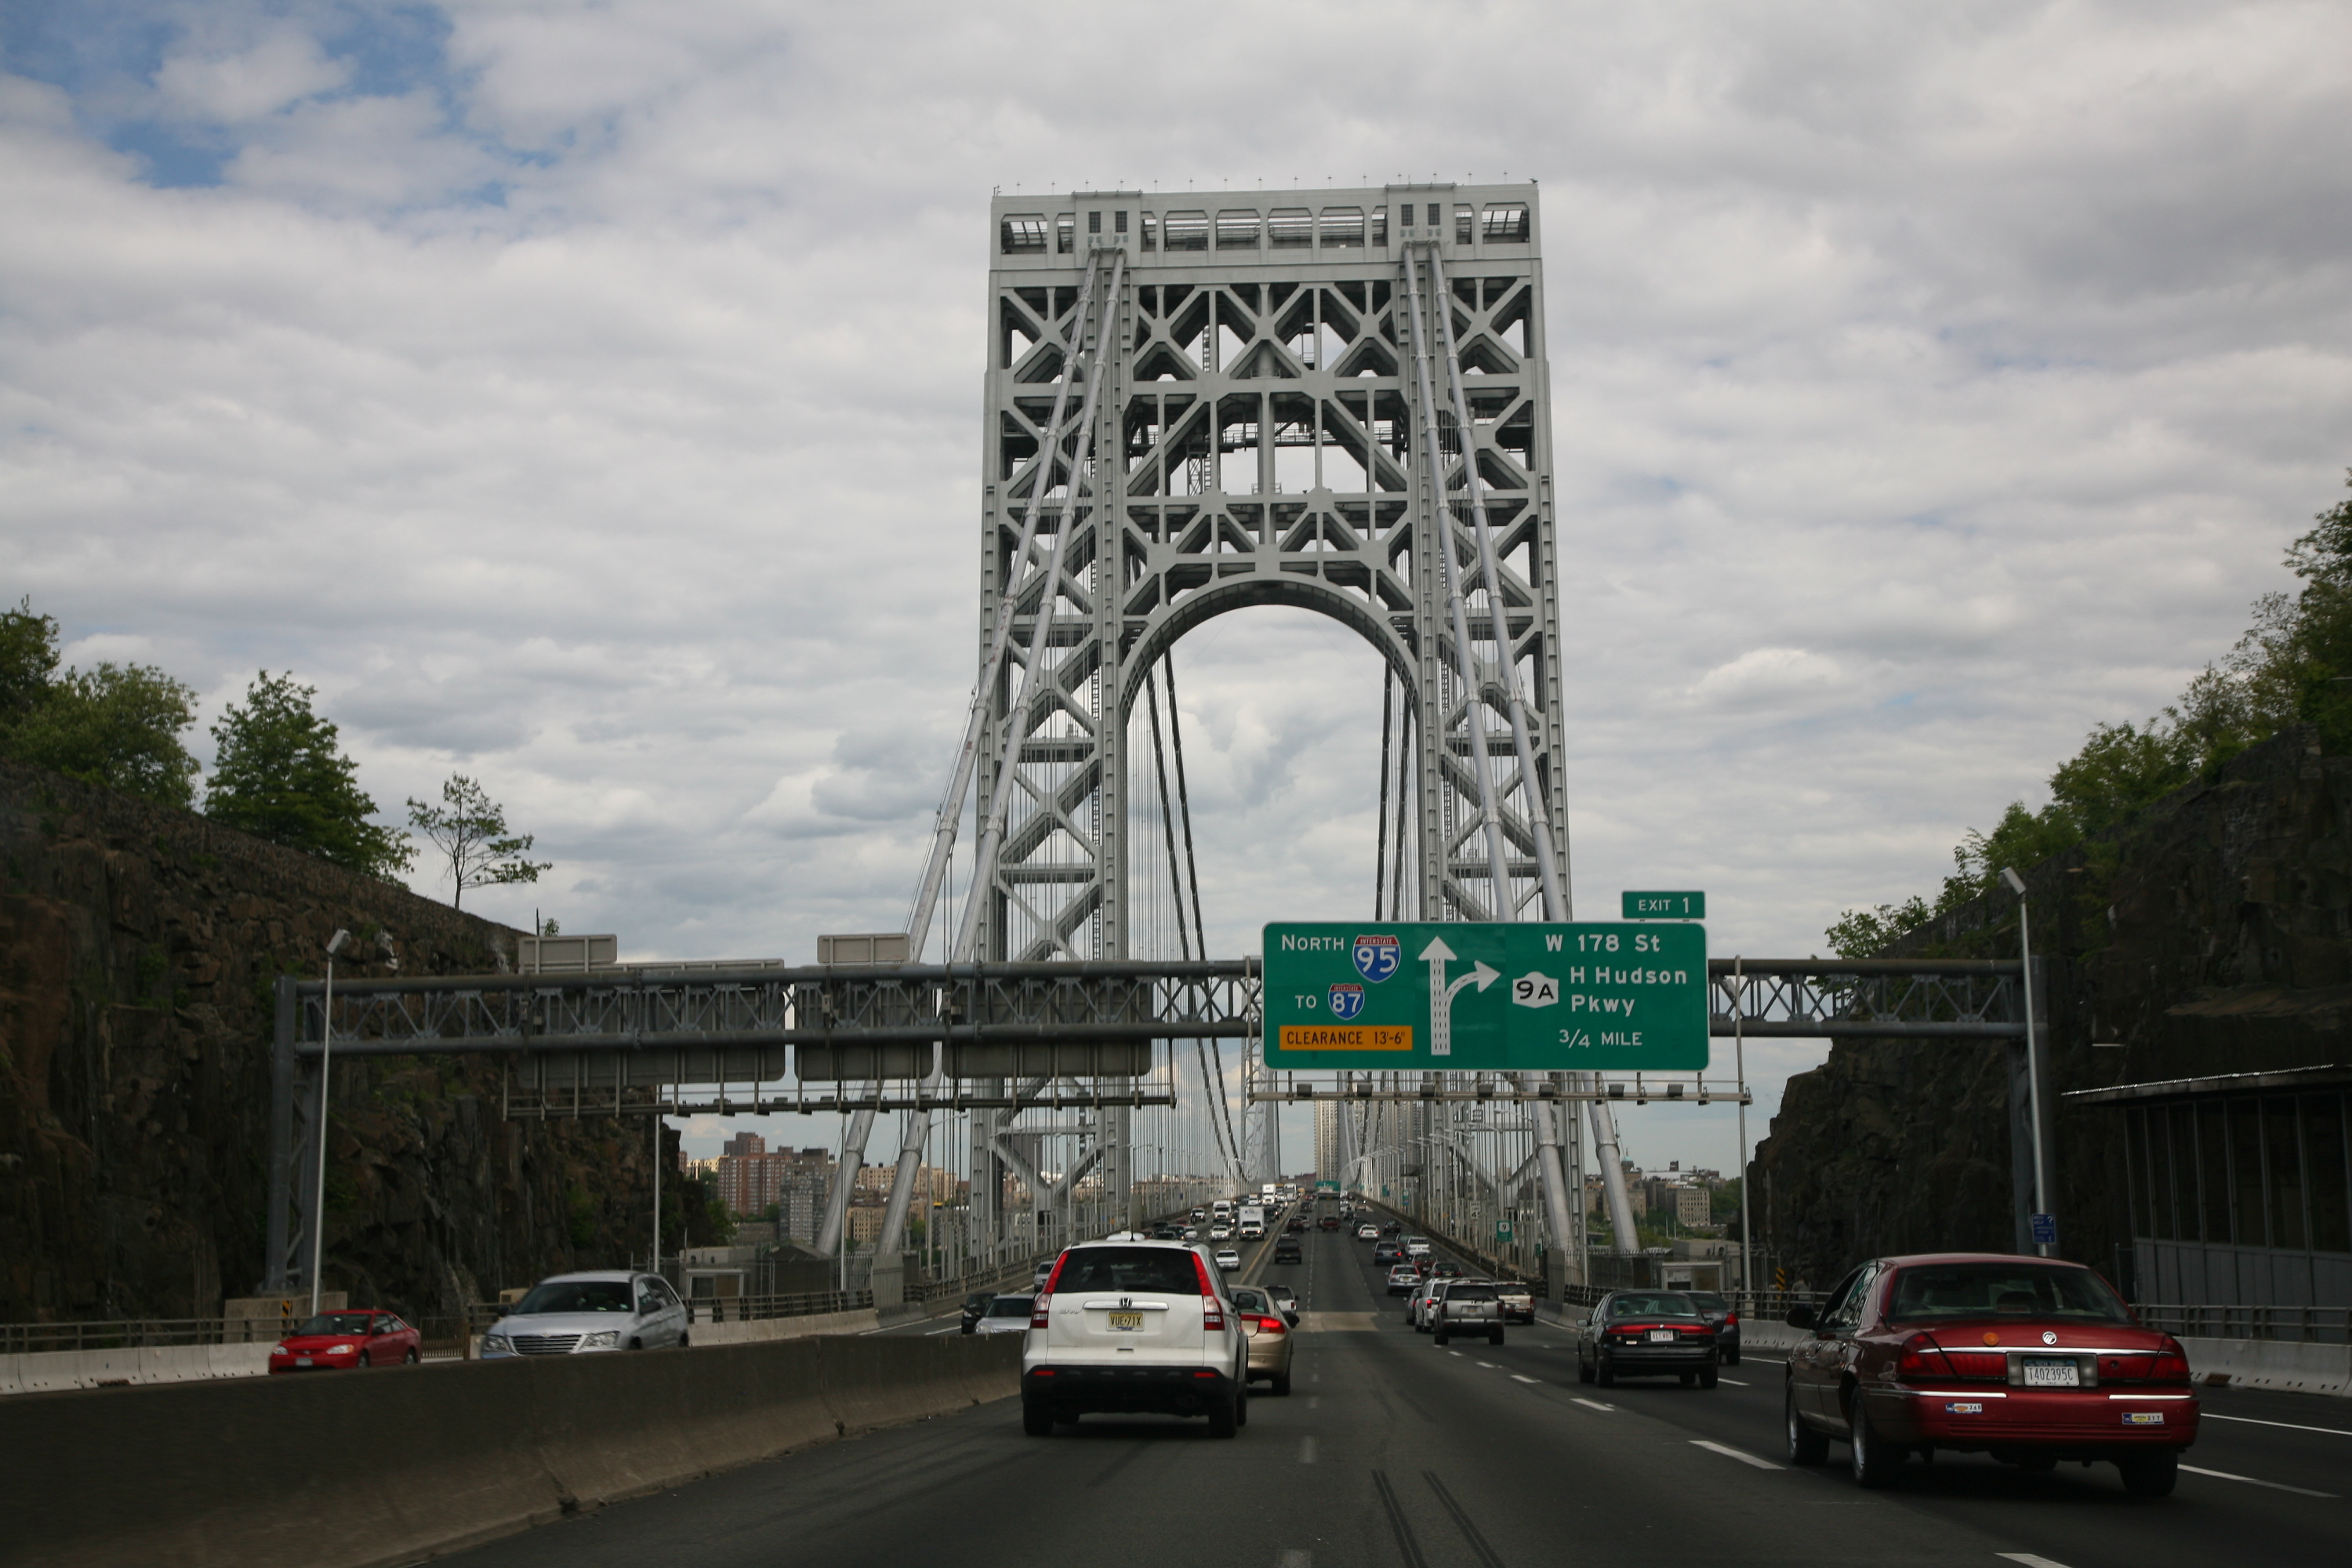 George Washington Bridge Backgrounds on Wallpapers Vista